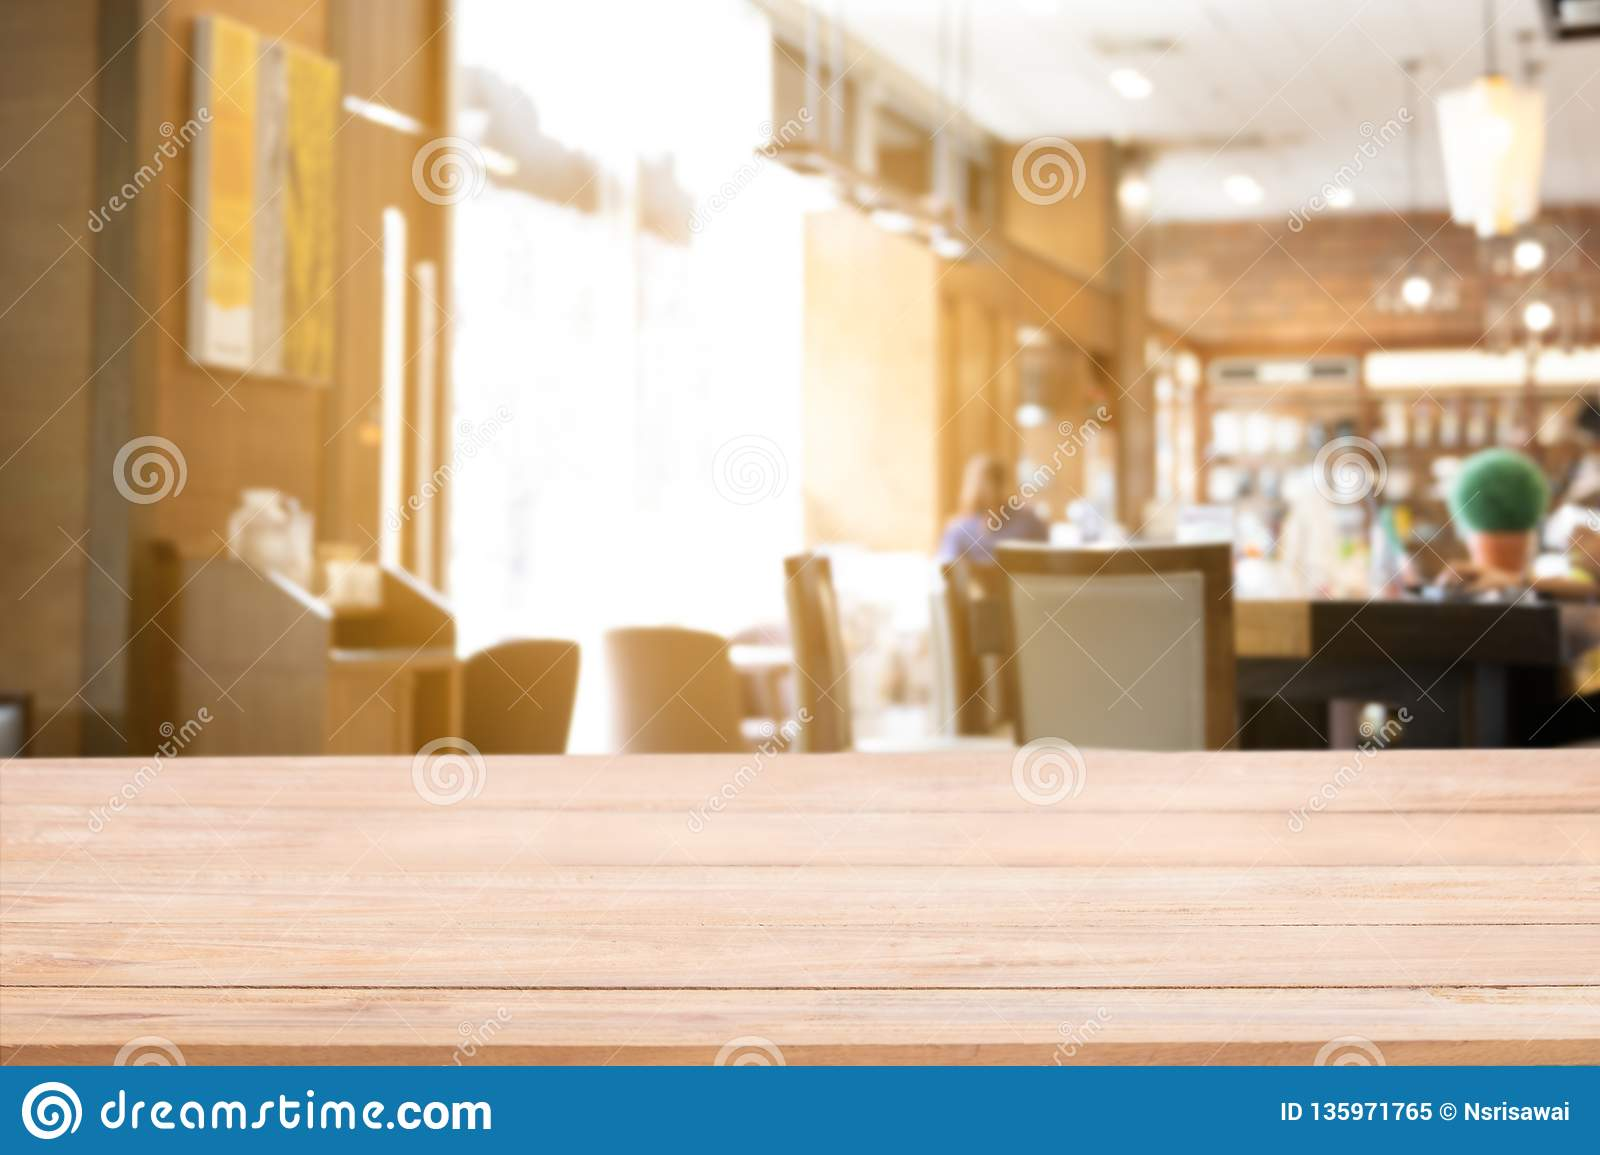 Real Wood Table Top Counter With Defocused Background Of Restaurant Bar Or Cafeteria Background Stock Image Image Of Crowd Customer 135971765